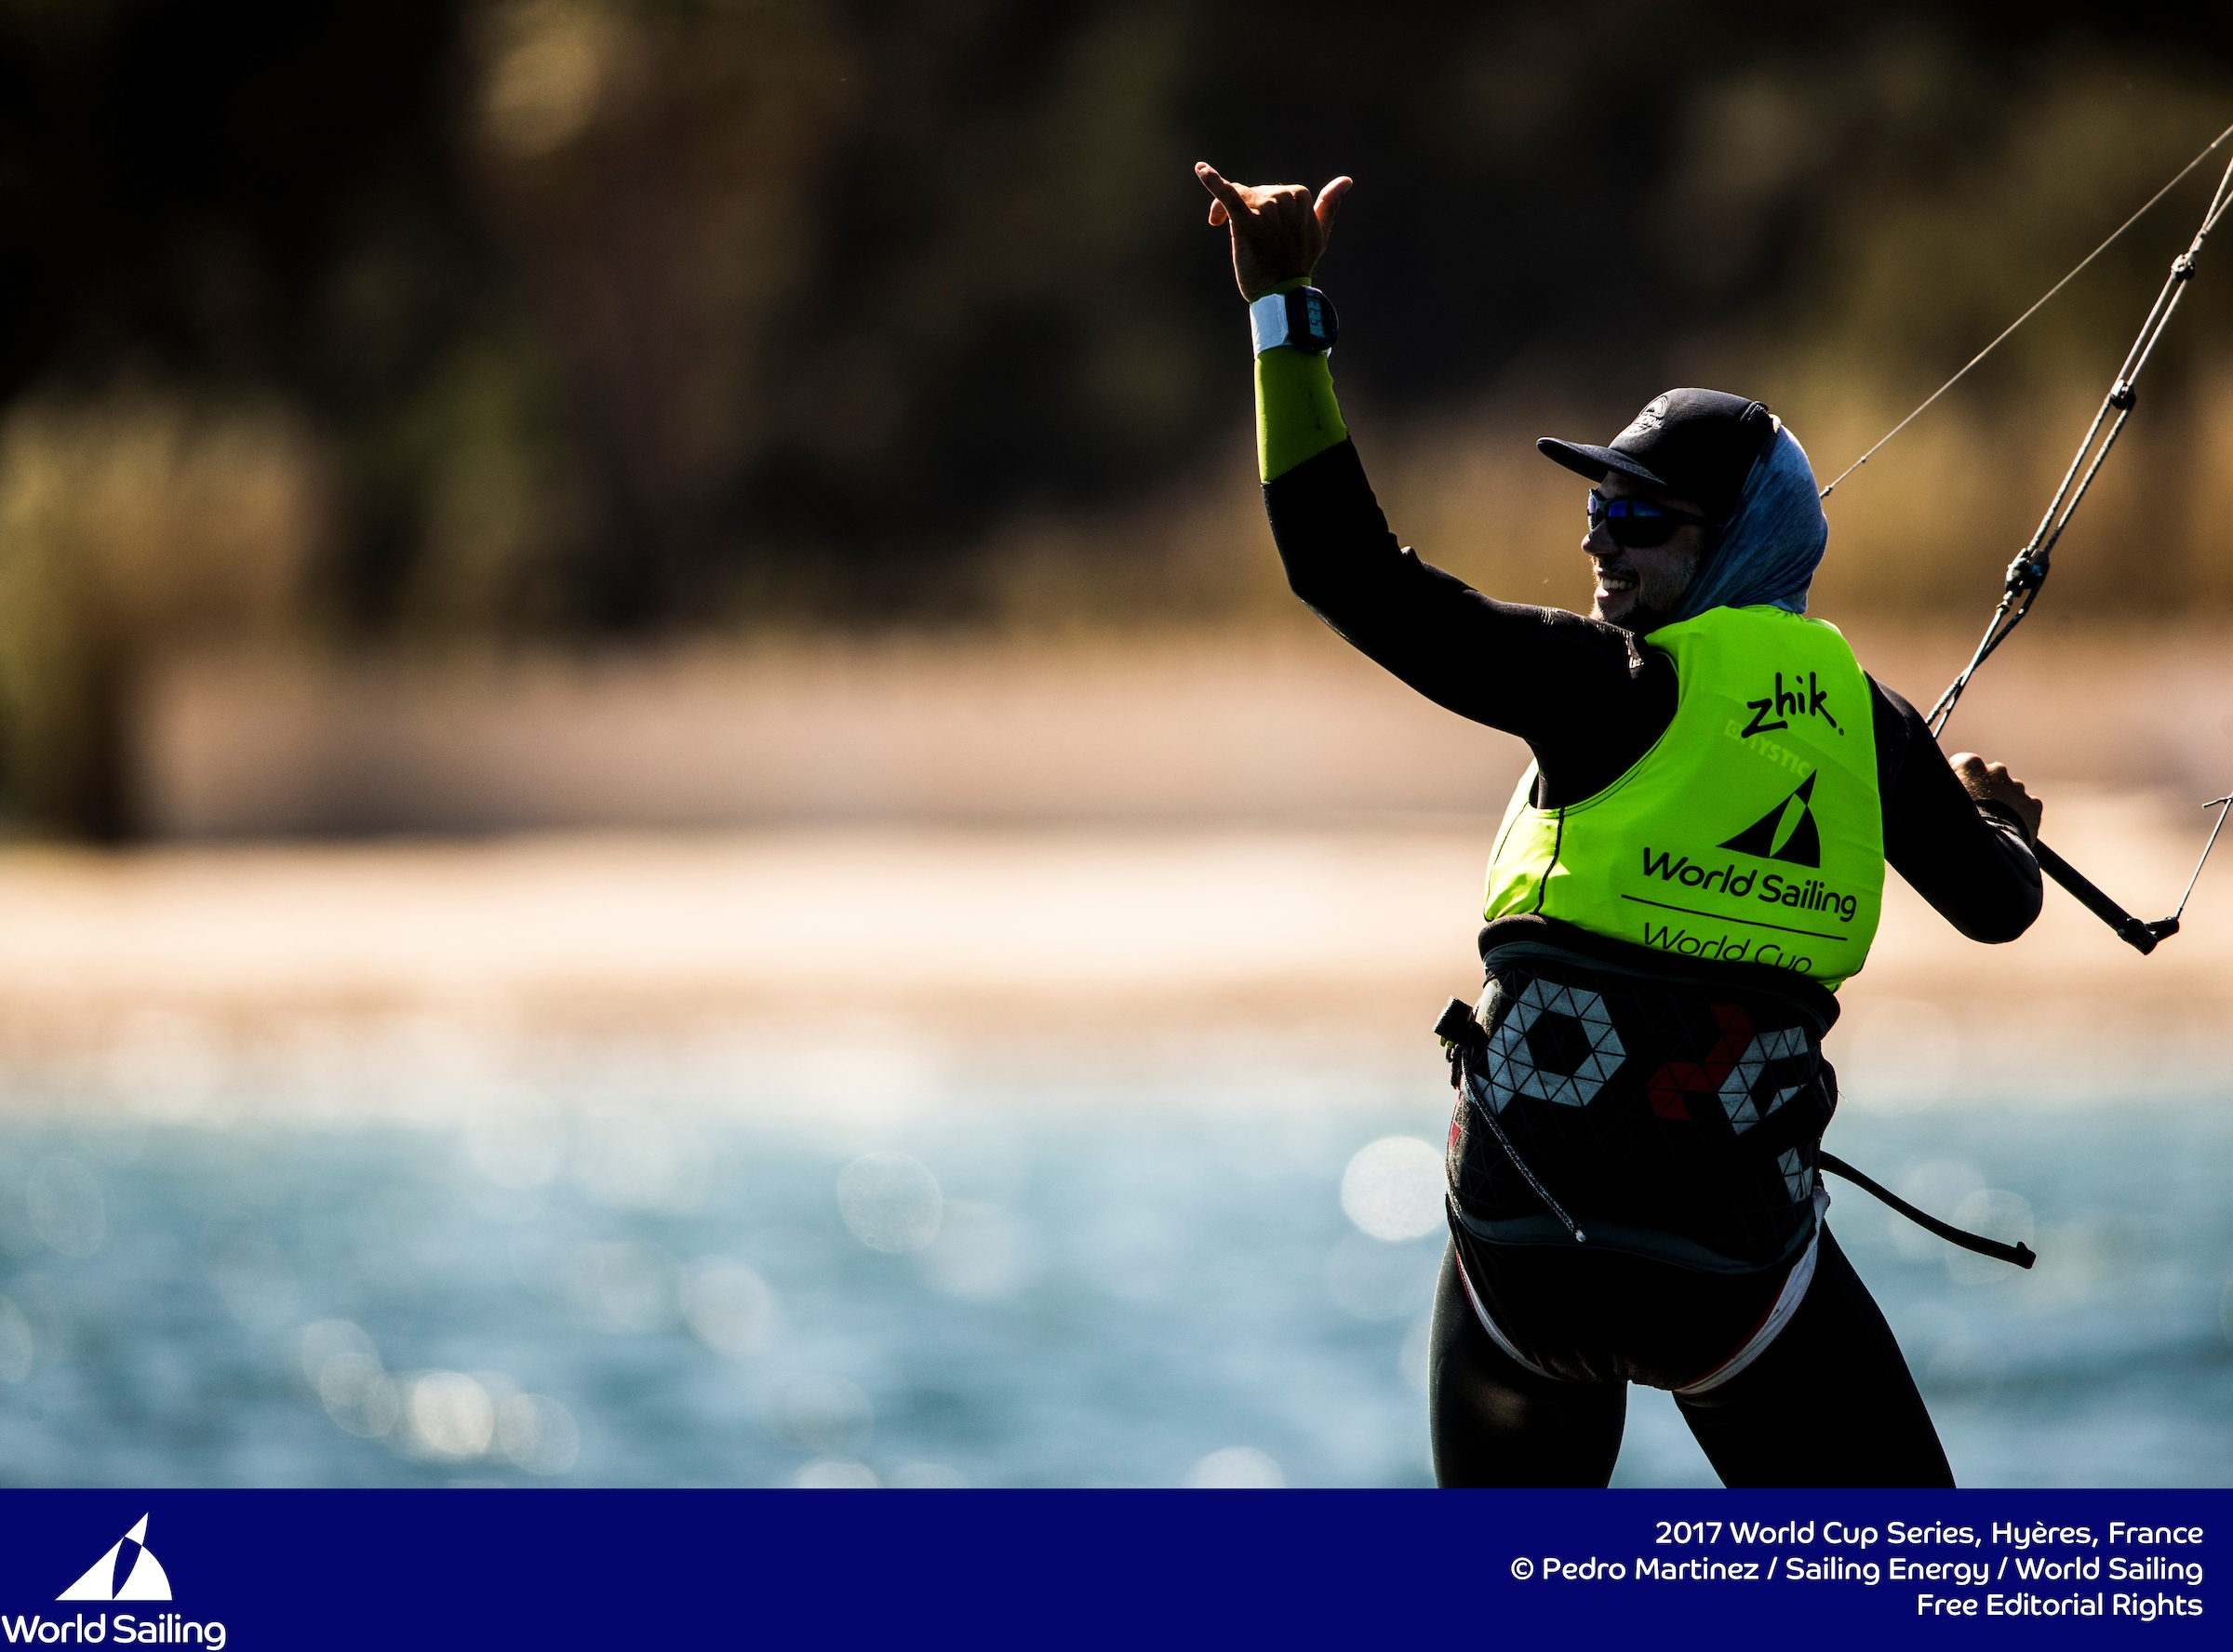 Nico Parlier finishes off with a perfect score in Hyeres champagne sailing conditions